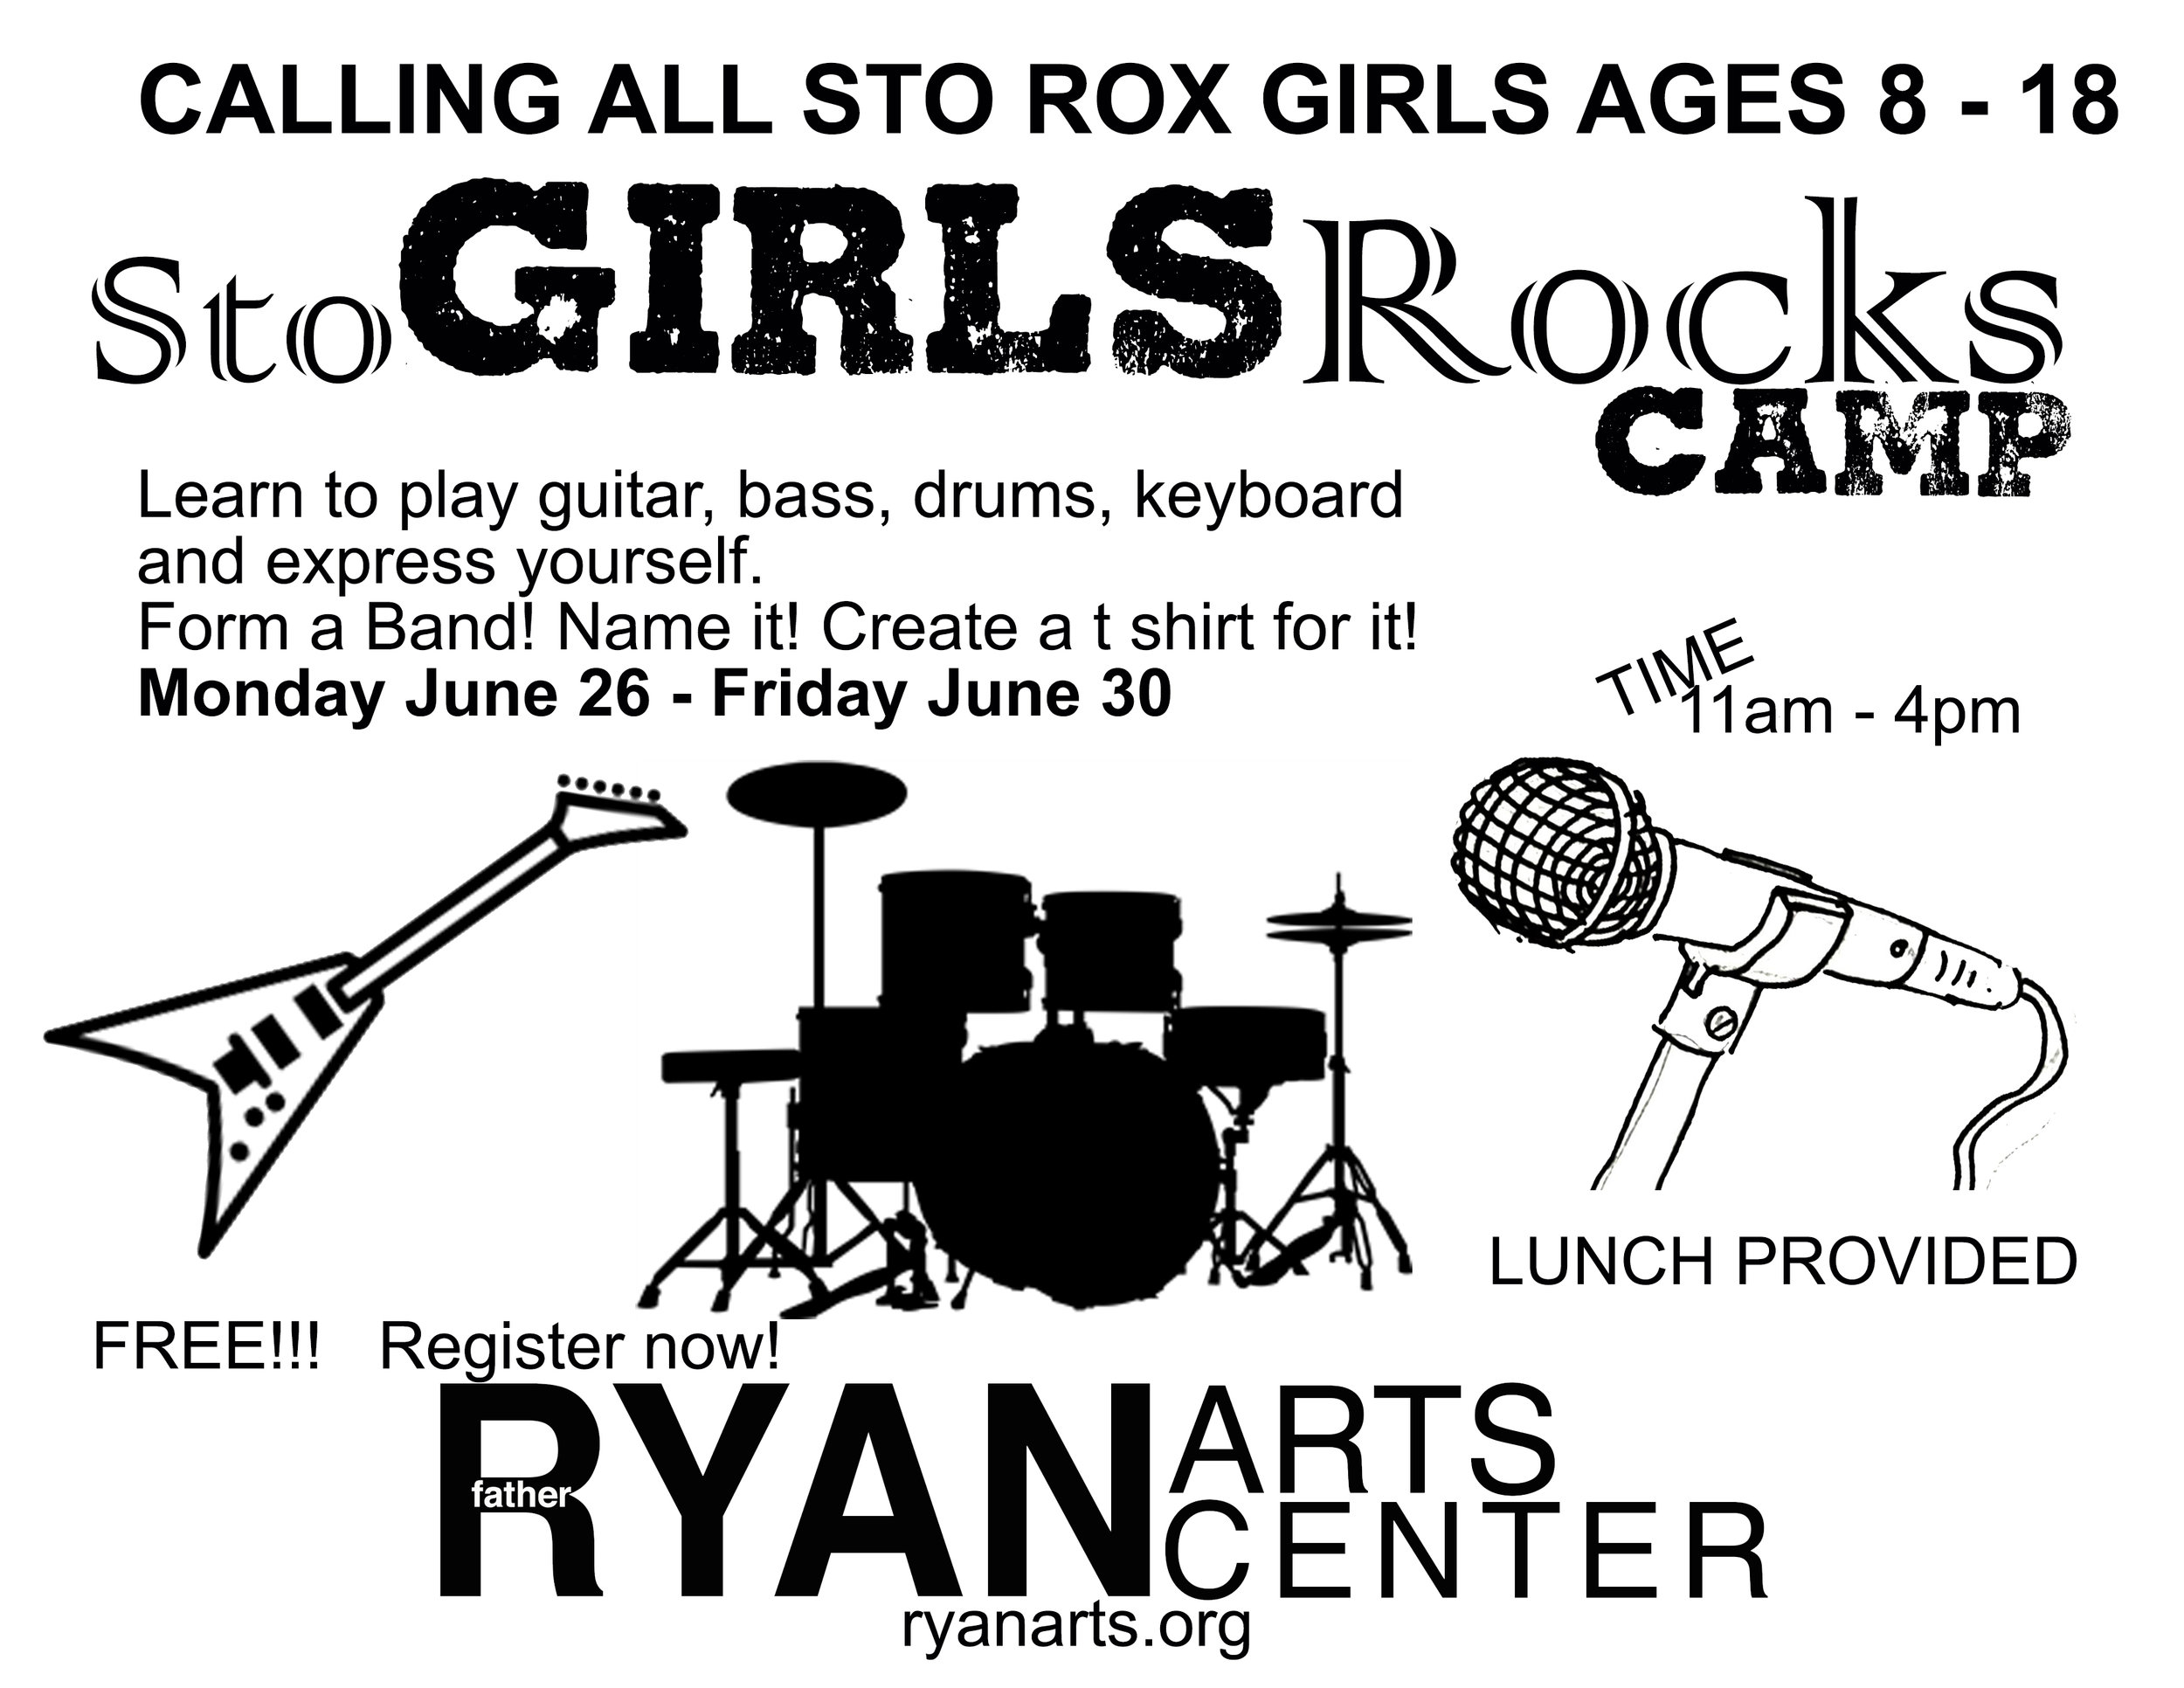 """StoGIRLSRocks is a FREE SUMMER MUSIC CAMP for GIRLS (ages 8-18) at the Ryan Arts Center.     DATES: June 26-June 30th  TIMES: 11am-4pm    SHOWCASE on June 30 at 6pm    StoGIRLSRocks is an empowerment program for female youths of all definitions, abilities, & backgrounds. Our program utilizes the process of making music to instill tools for the amplification of self-confidence, creative expression, independent thinking, mutual respect, & cooperation while cultivating a supportive & inclusive community of peers and mentors.    Girls can join to learn the basics in Guitar, Beatmaking, Drums, Keyboards, and Singing. Students will be paired with teaching artists and get to learn hands on the basics of music making, forming a band, creating a band, and more.    CAPACITY OF 30 students    register at RyanArts.org   REGISTER HERE            96              Normal   0           false   false   false     EN-US   X-NONE   X-NONE                                                                                                                                                                                                                                                                                                                                                                           /* Style Definitions */ table.MsoNormalTable {mso-style-name:""""Table Normal""""; mso-tstyle-rowband-size:0; mso-tstyle-colband-size:0; mso-style-noshow:yes; mso-style-priority:99; mso-style-parent:""""""""; mso-padding-alt:0in 5.4pt 0in 5.4pt; mso-para-margin:0in; mso-para-margin-bottom:.0001pt; mso-pagination:widow-orphan; font-size:12.0pt; font-family:Calibri; mso-ascii-font-family:Calibri; mso-ascii-theme-font:minor-latin; mso-hansi-font-family:Calibri; mso-hansi-theme-font:minor-latin;}          INSTRUCTOR INFO    Danielle Maggio (camp director):   Danielle is a vocalist, teacher, researcher and activist who specializes in American popular music culture. She is currently a PhD student in the Music depar"""